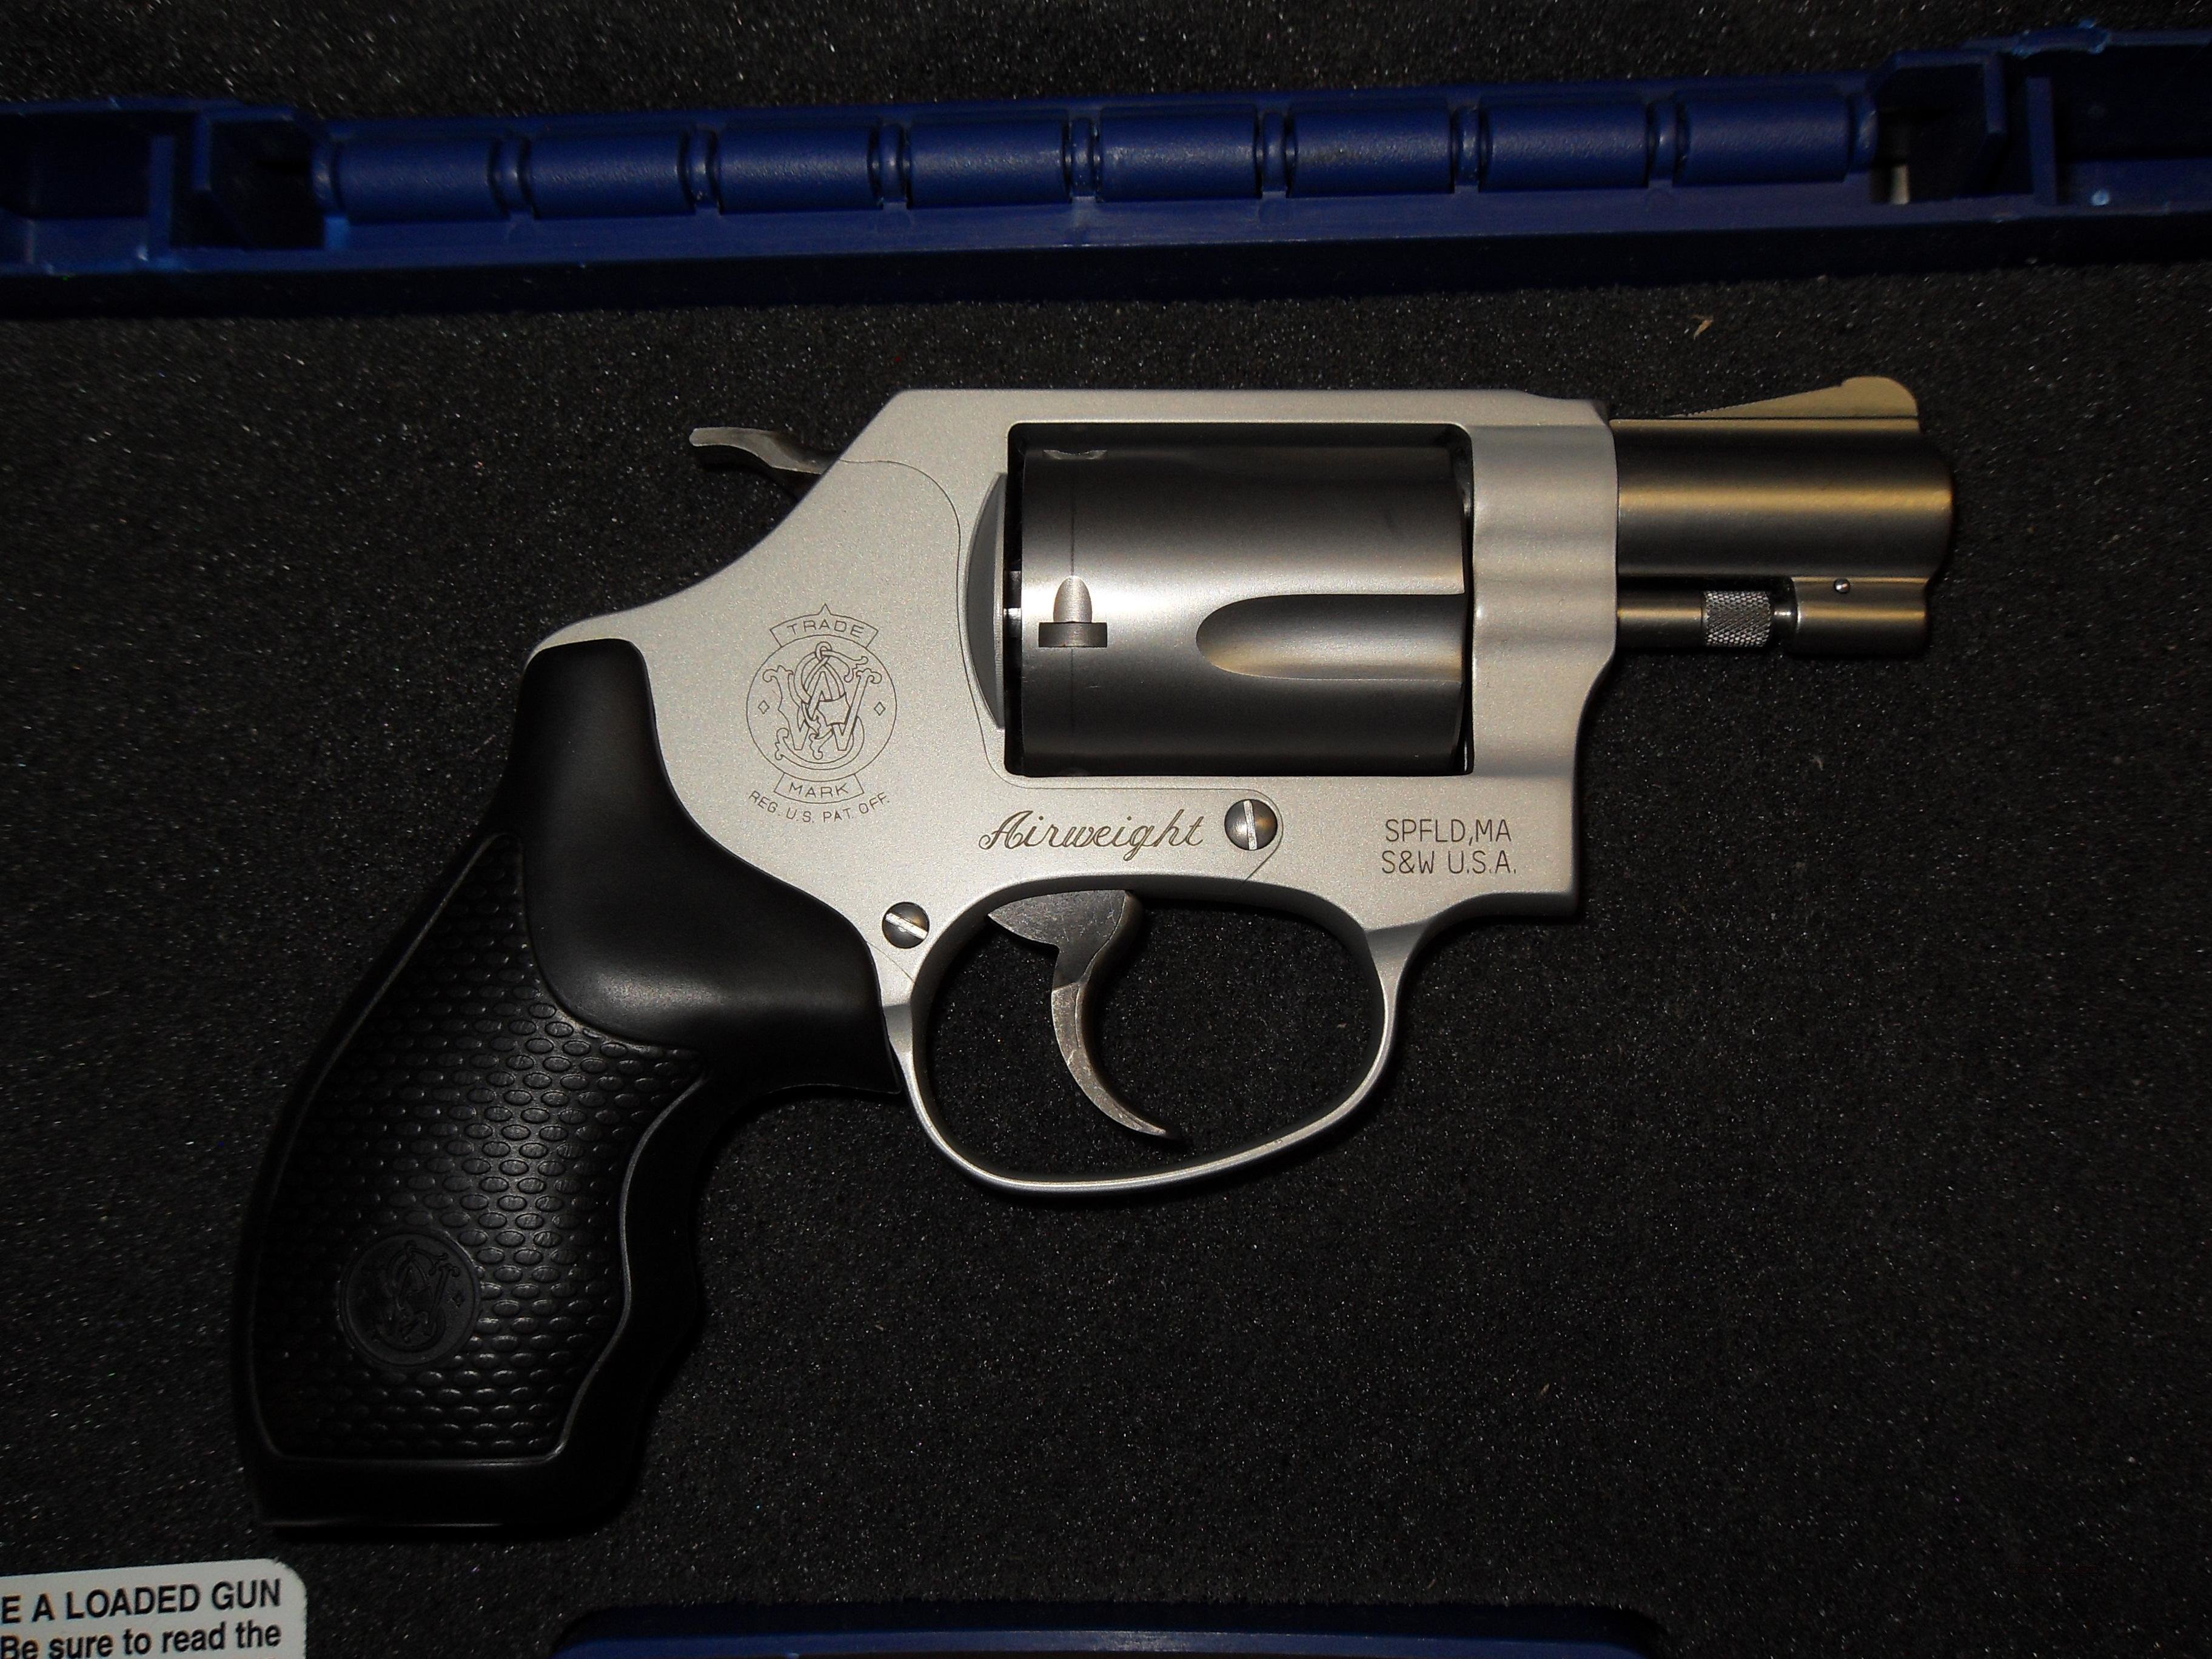 Smith & Wesson 637  Guns > Pistols > Smith & Wesson Revolvers > Pocket Pistols